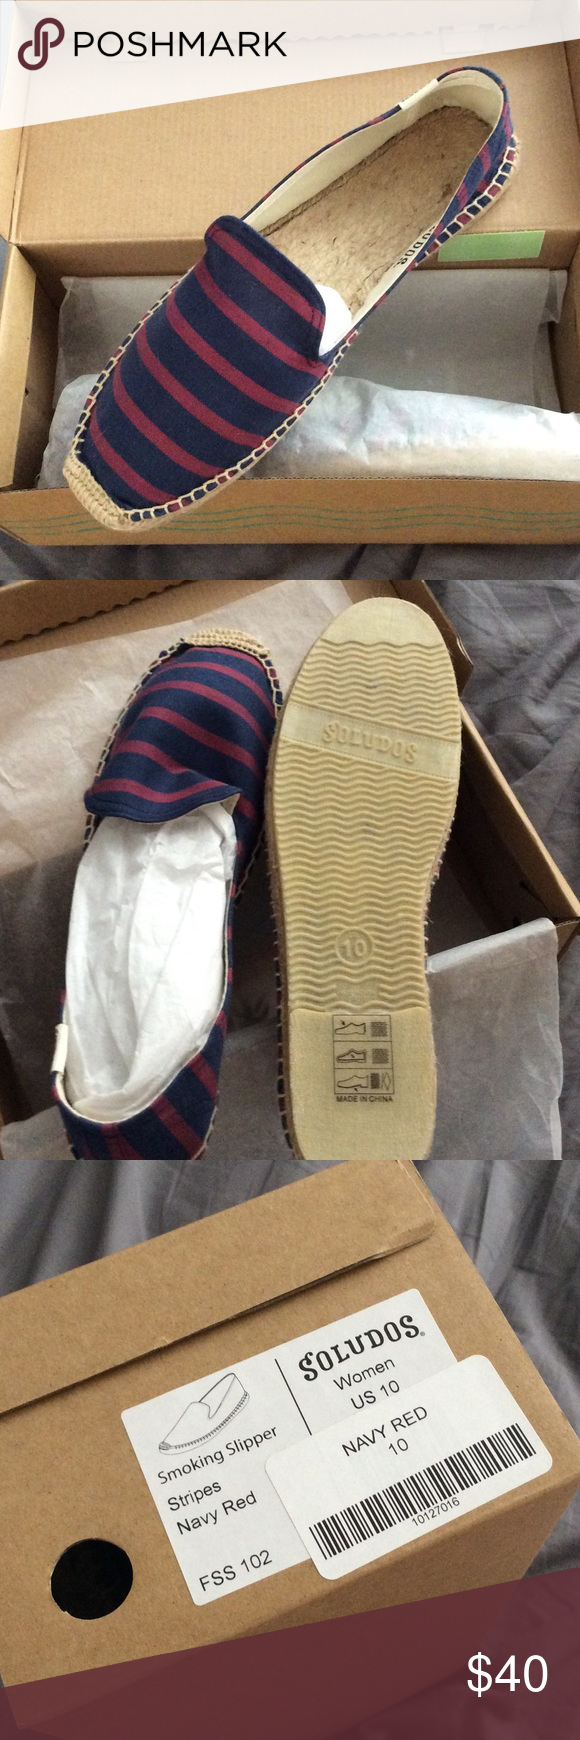 Soludos Smoking Slippers Brand new. Never worn. Navy & Red stripes. Original packaging. Soludos Shoes Flats & Loafers